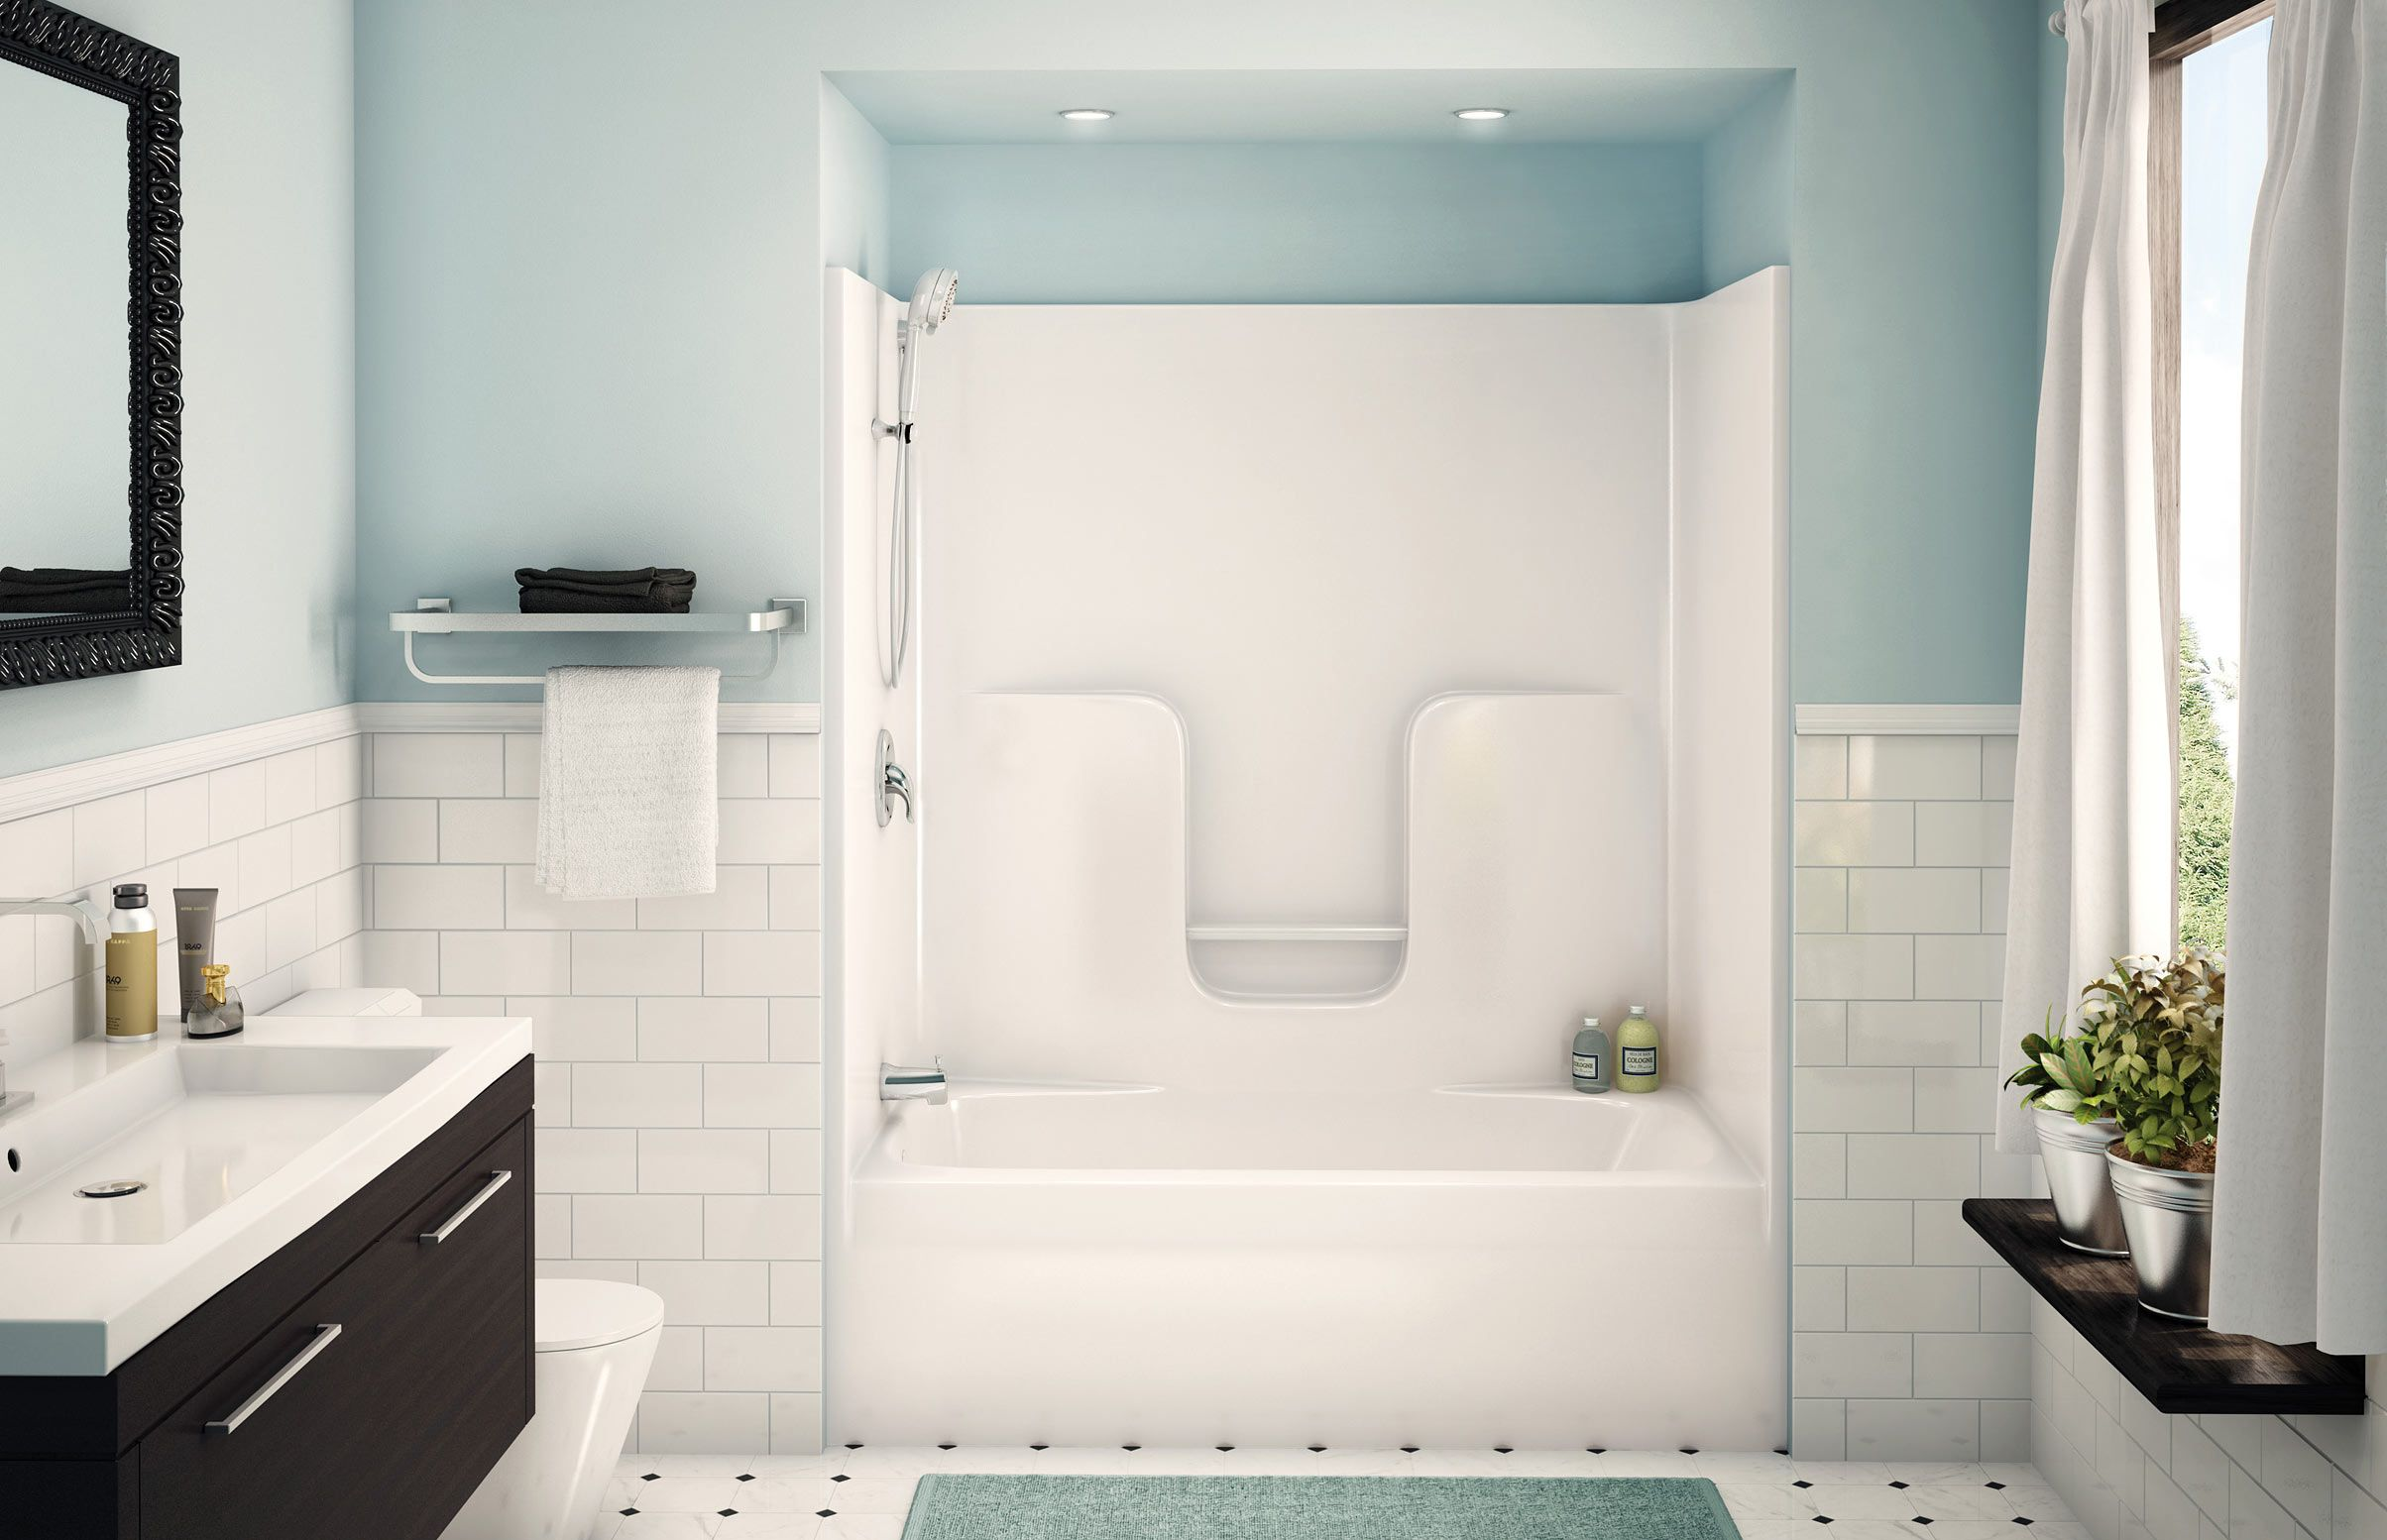 Fiberglass Bathtub Shower Combo | doccia/vasca | Pinterest | Bathtub ...